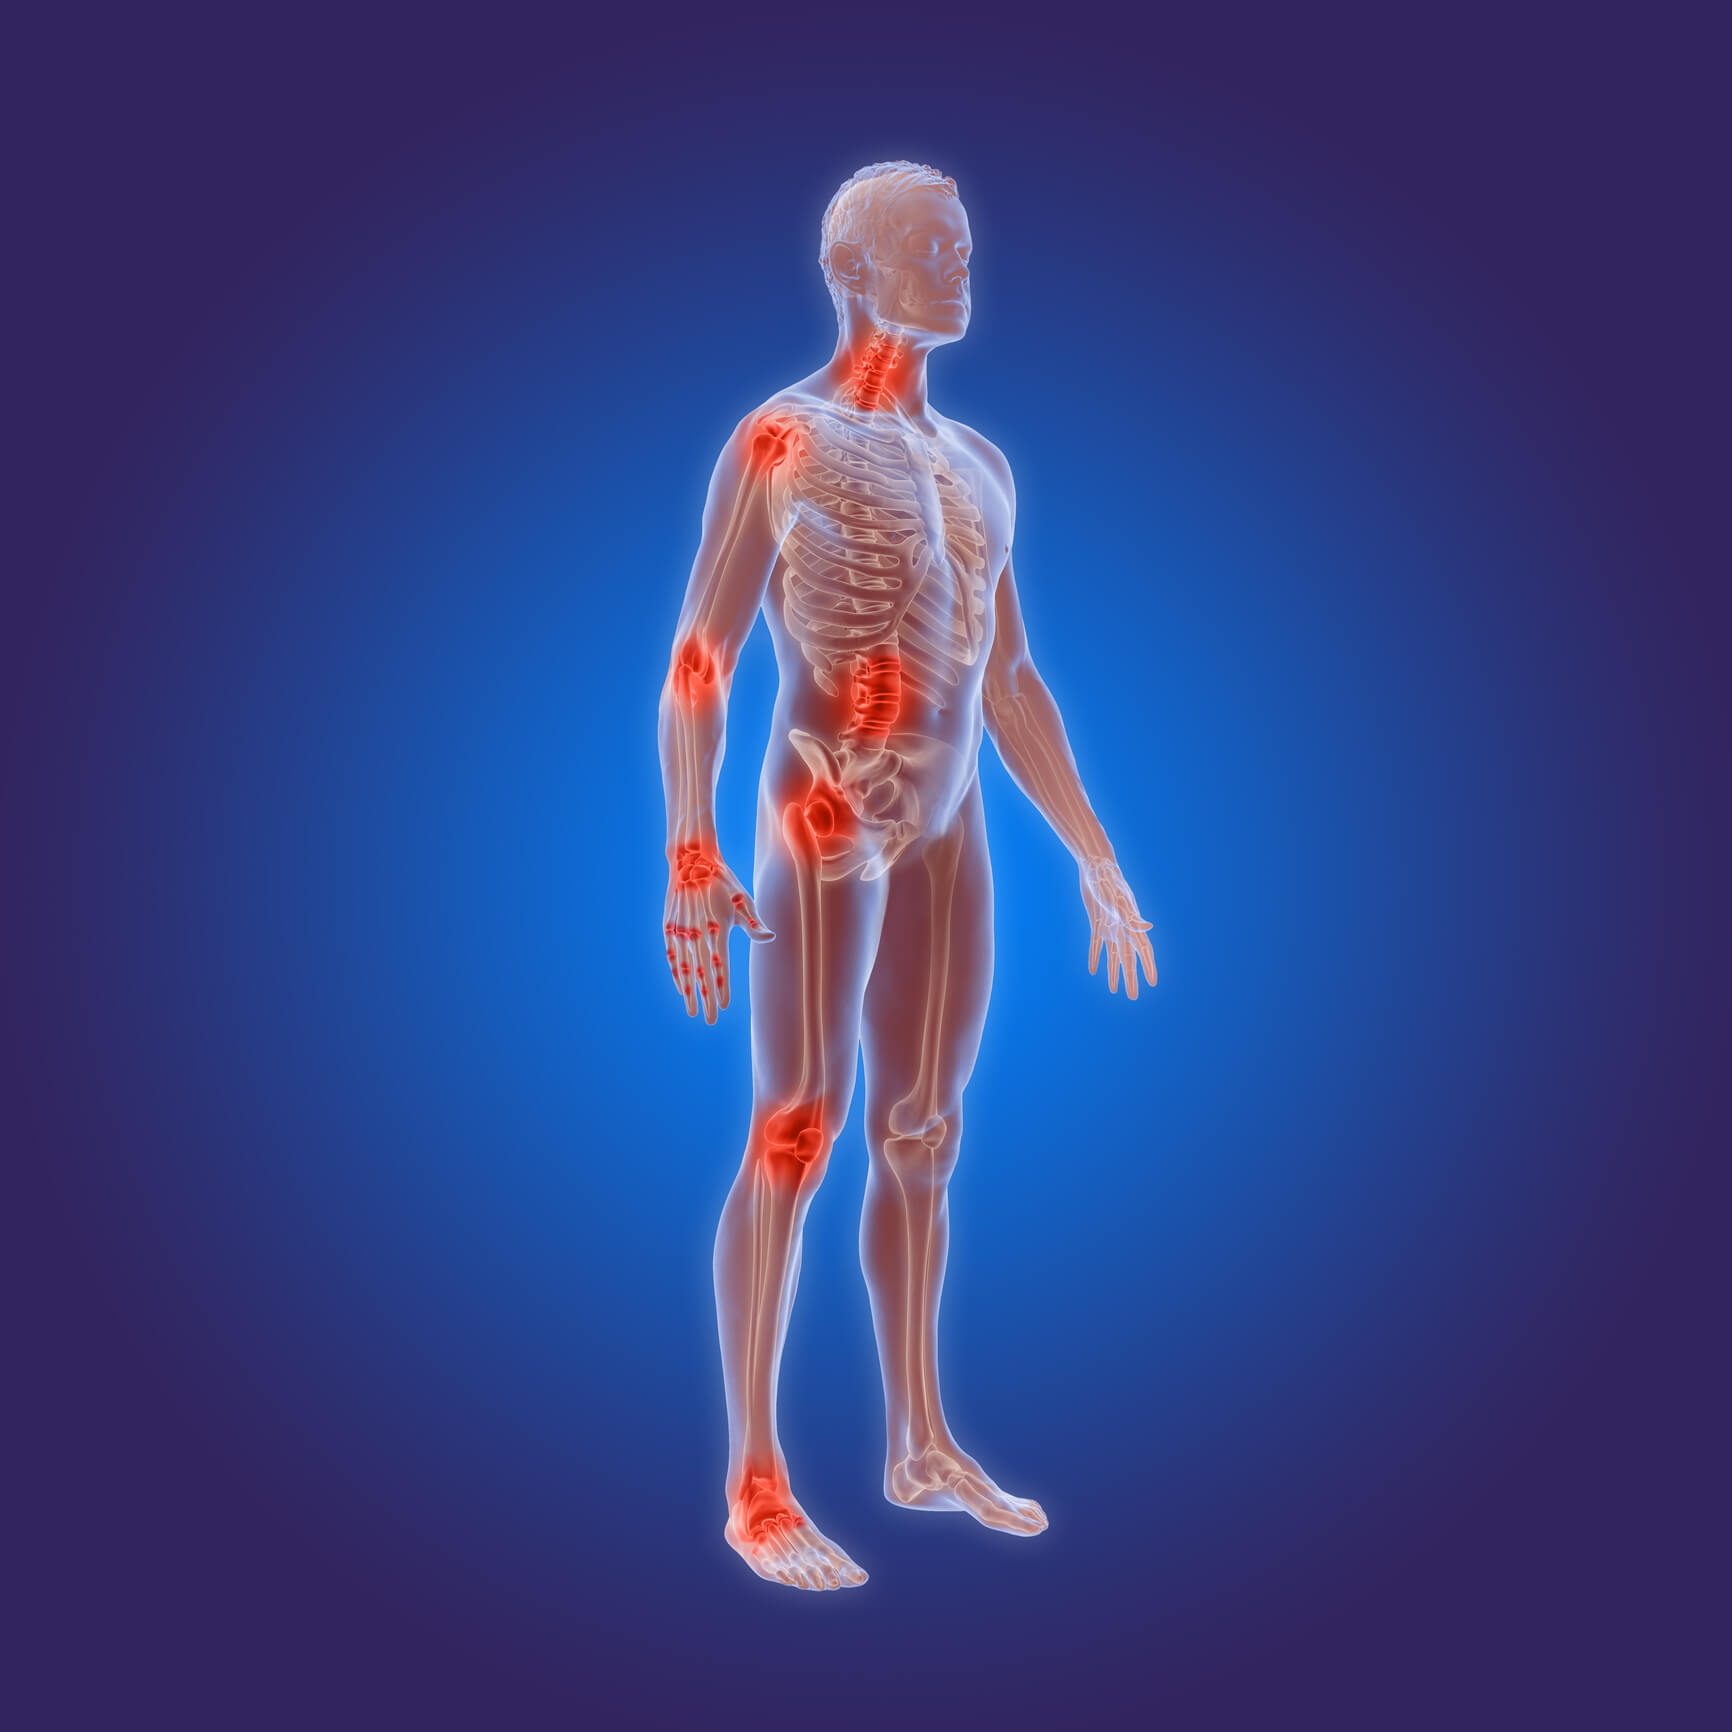 Arthritis Chiropractic - Greenbelt Wellness and Physical Therapy